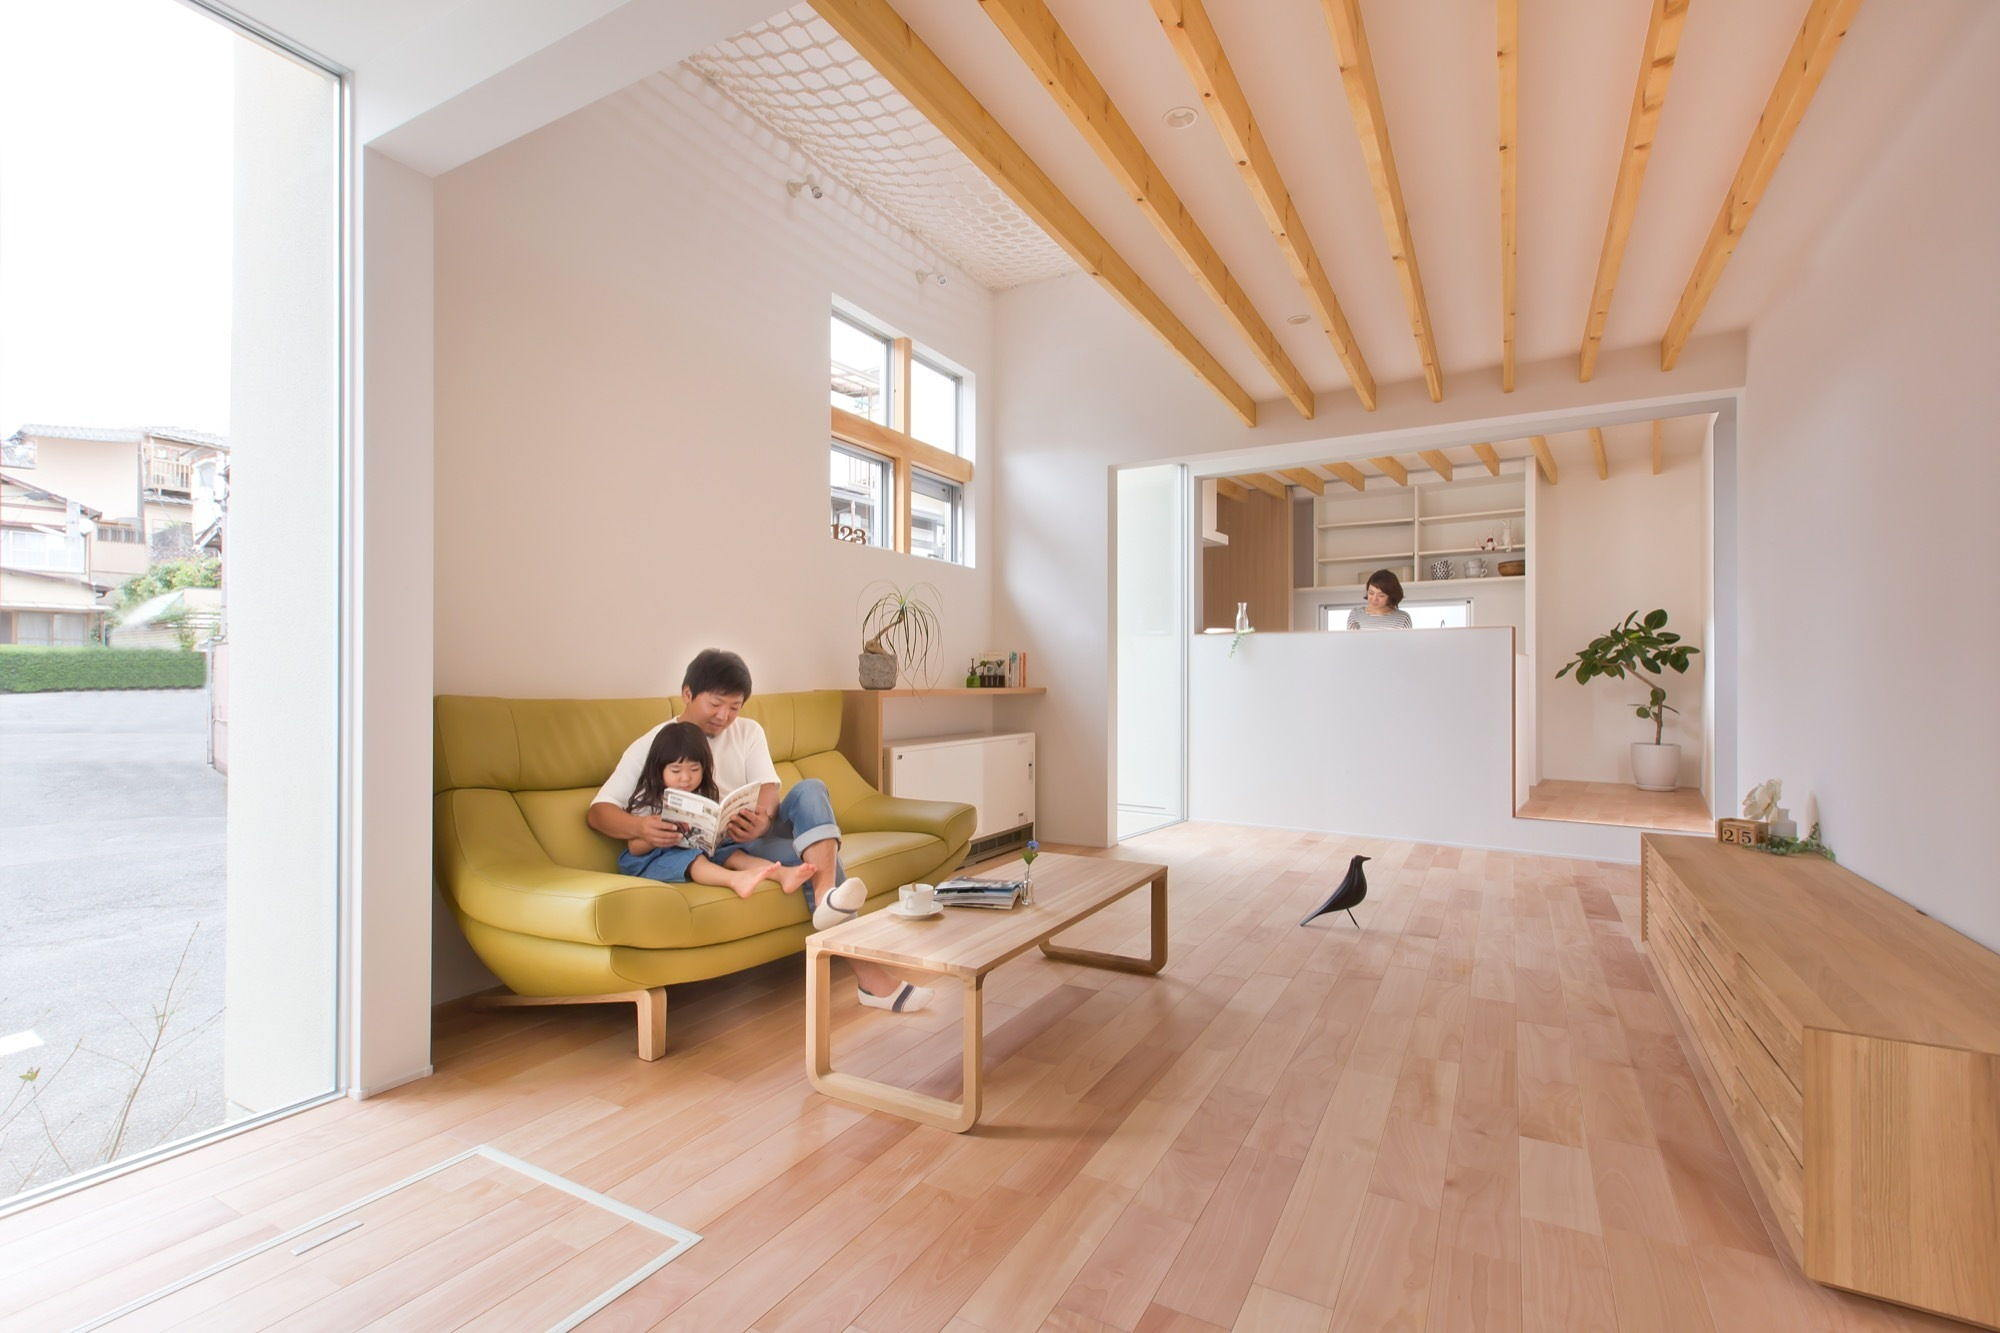 The house in japanese minimalism in kyoto by alts design for Japan minimalist home design